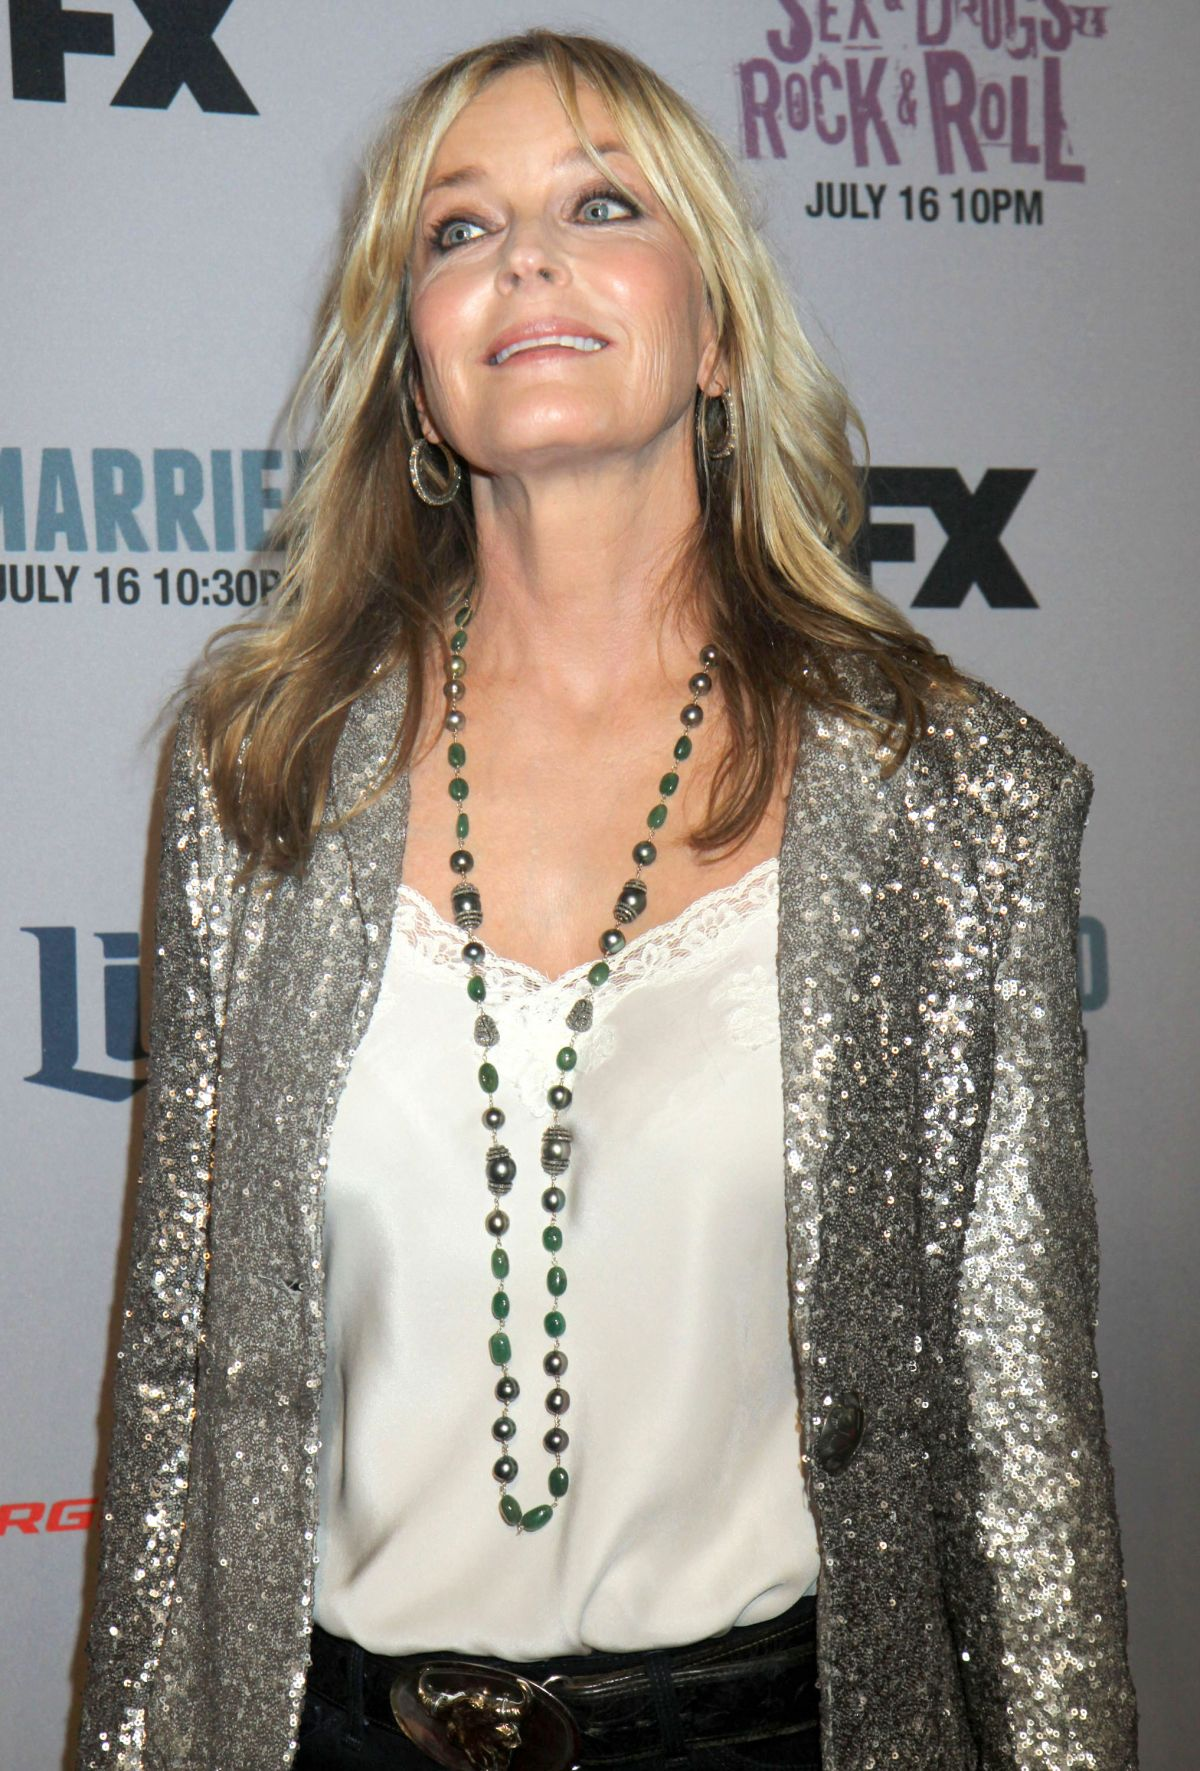 BO DEREK at Sex&Drugs&Rock&Roll Premiere in New York